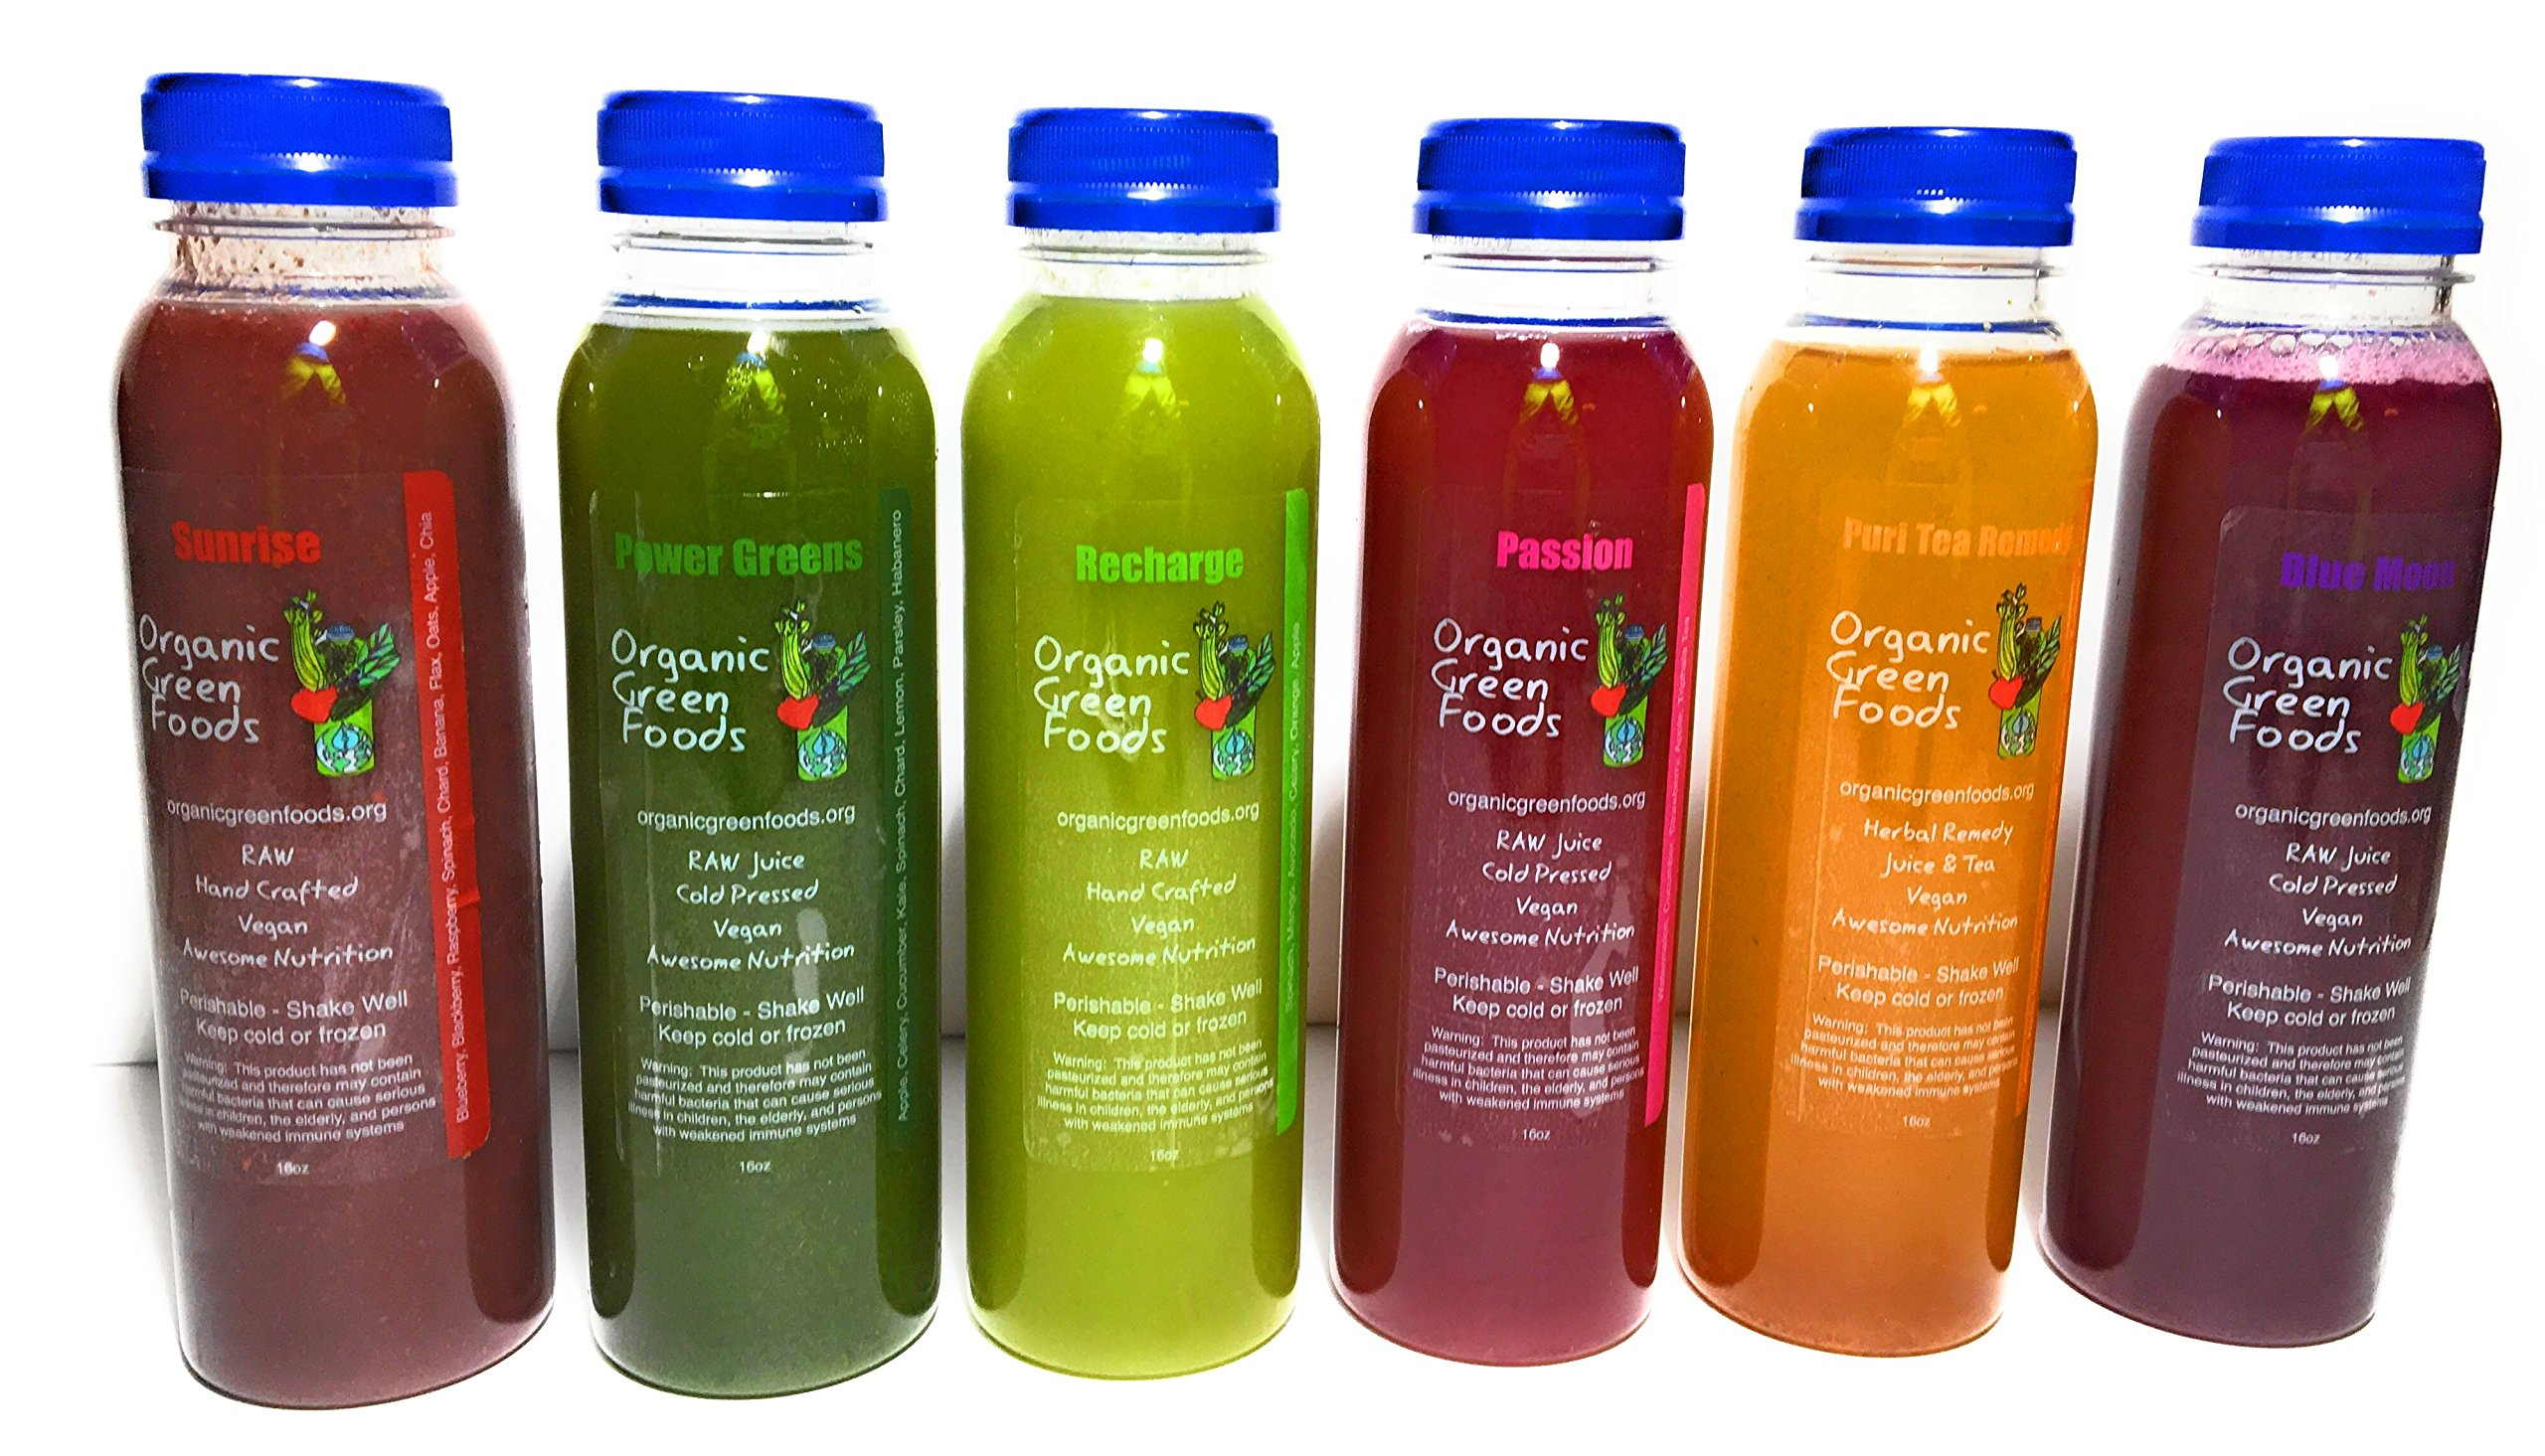 Juice Cleanse ''Skinny'' Cleanse 3 Day - 18 Bottles Organic Green Foods by Organic Green Foods